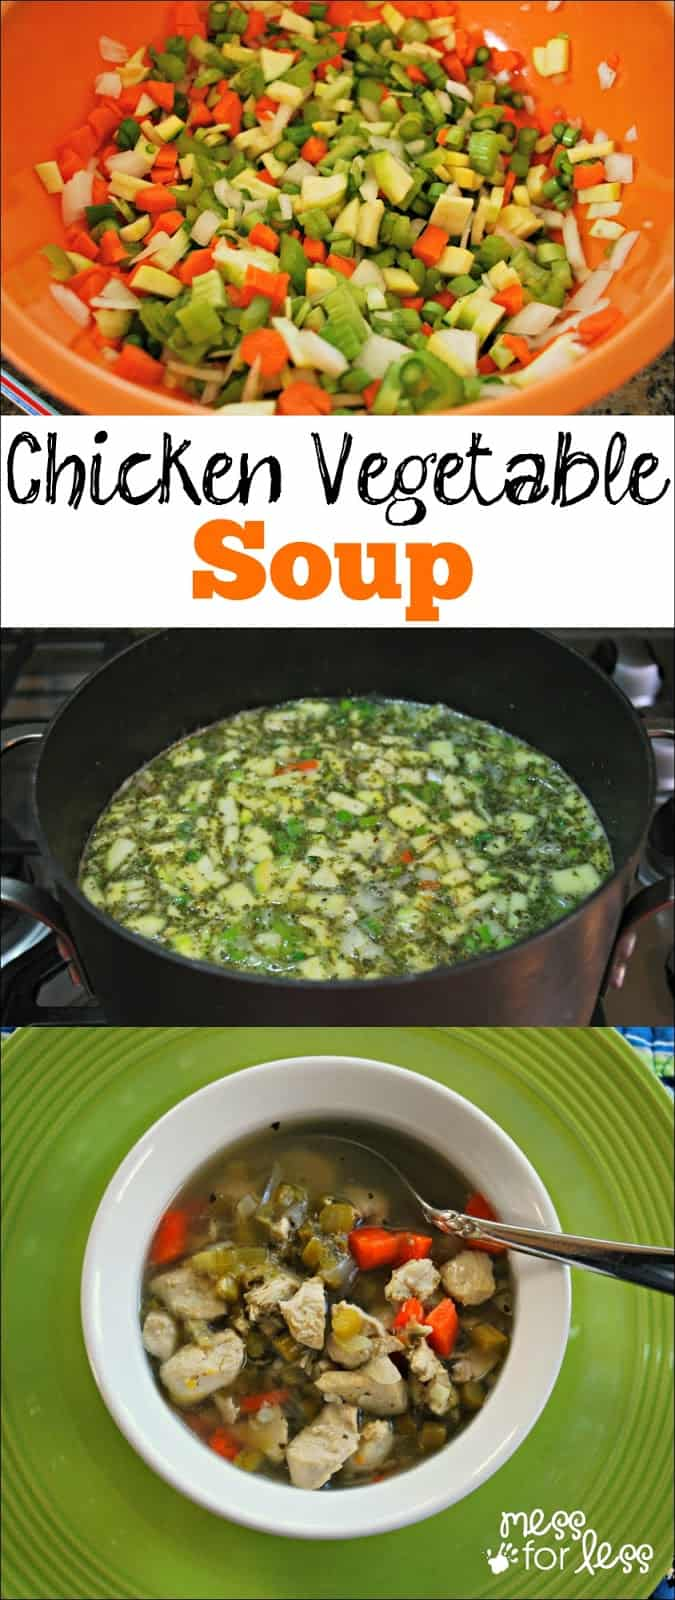 Chicken Vegetable Soup - A filling and healthy low carb soup. This is so good, you won't miss the noodles!